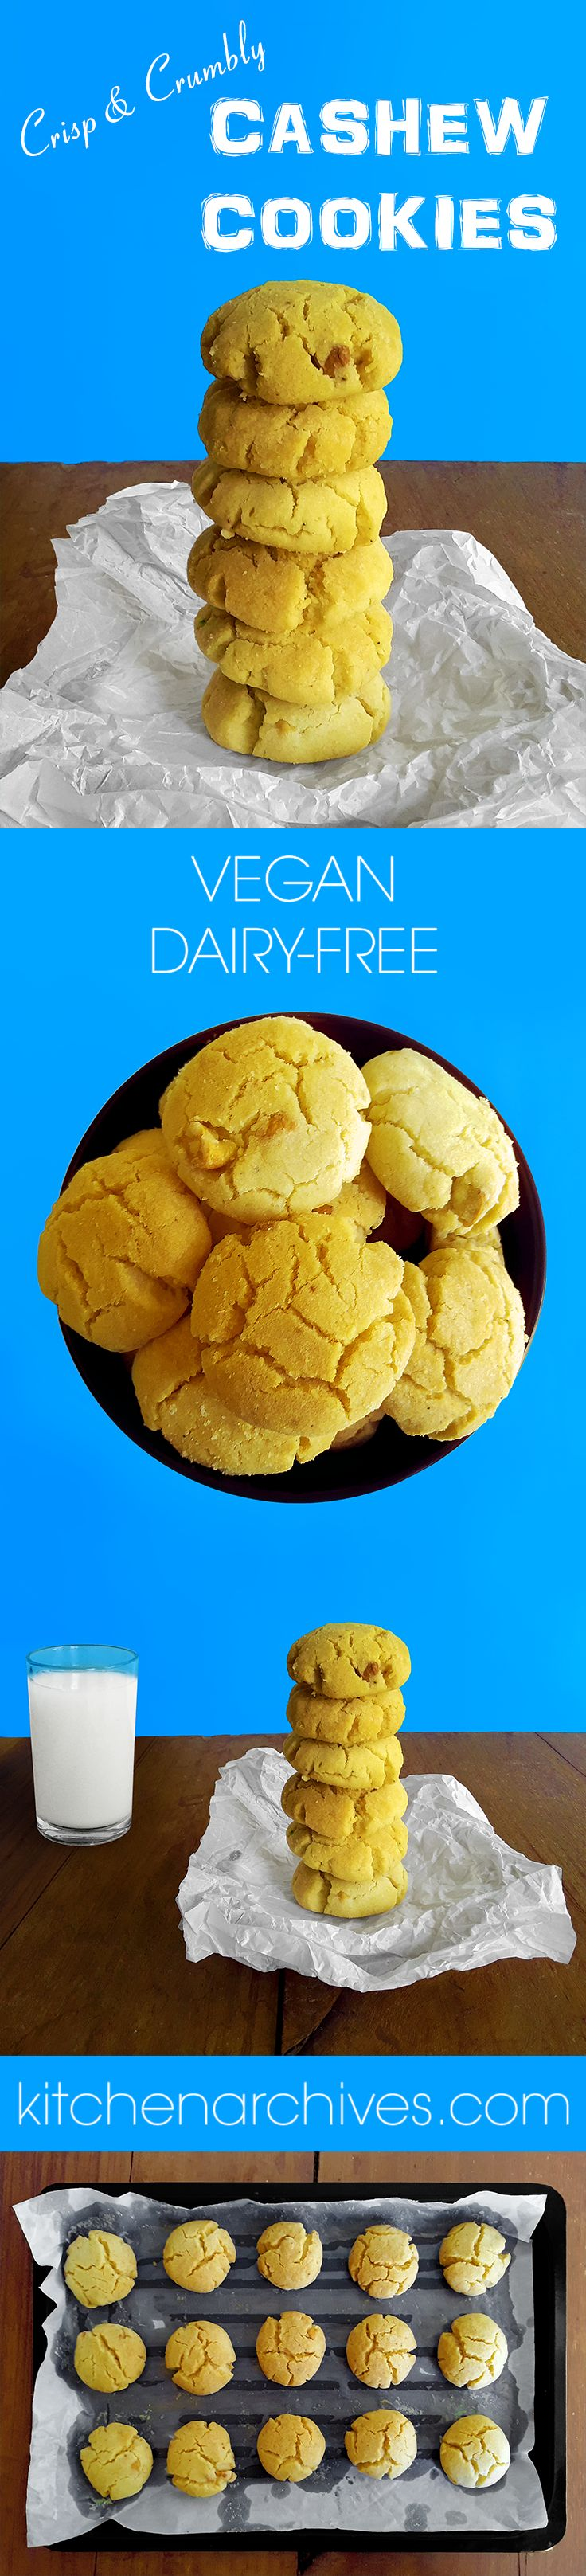 Delicious, crisp and crumbly, melt-in-your-mouth, sweet, vegan cashew cookies - Kitchen Archives.